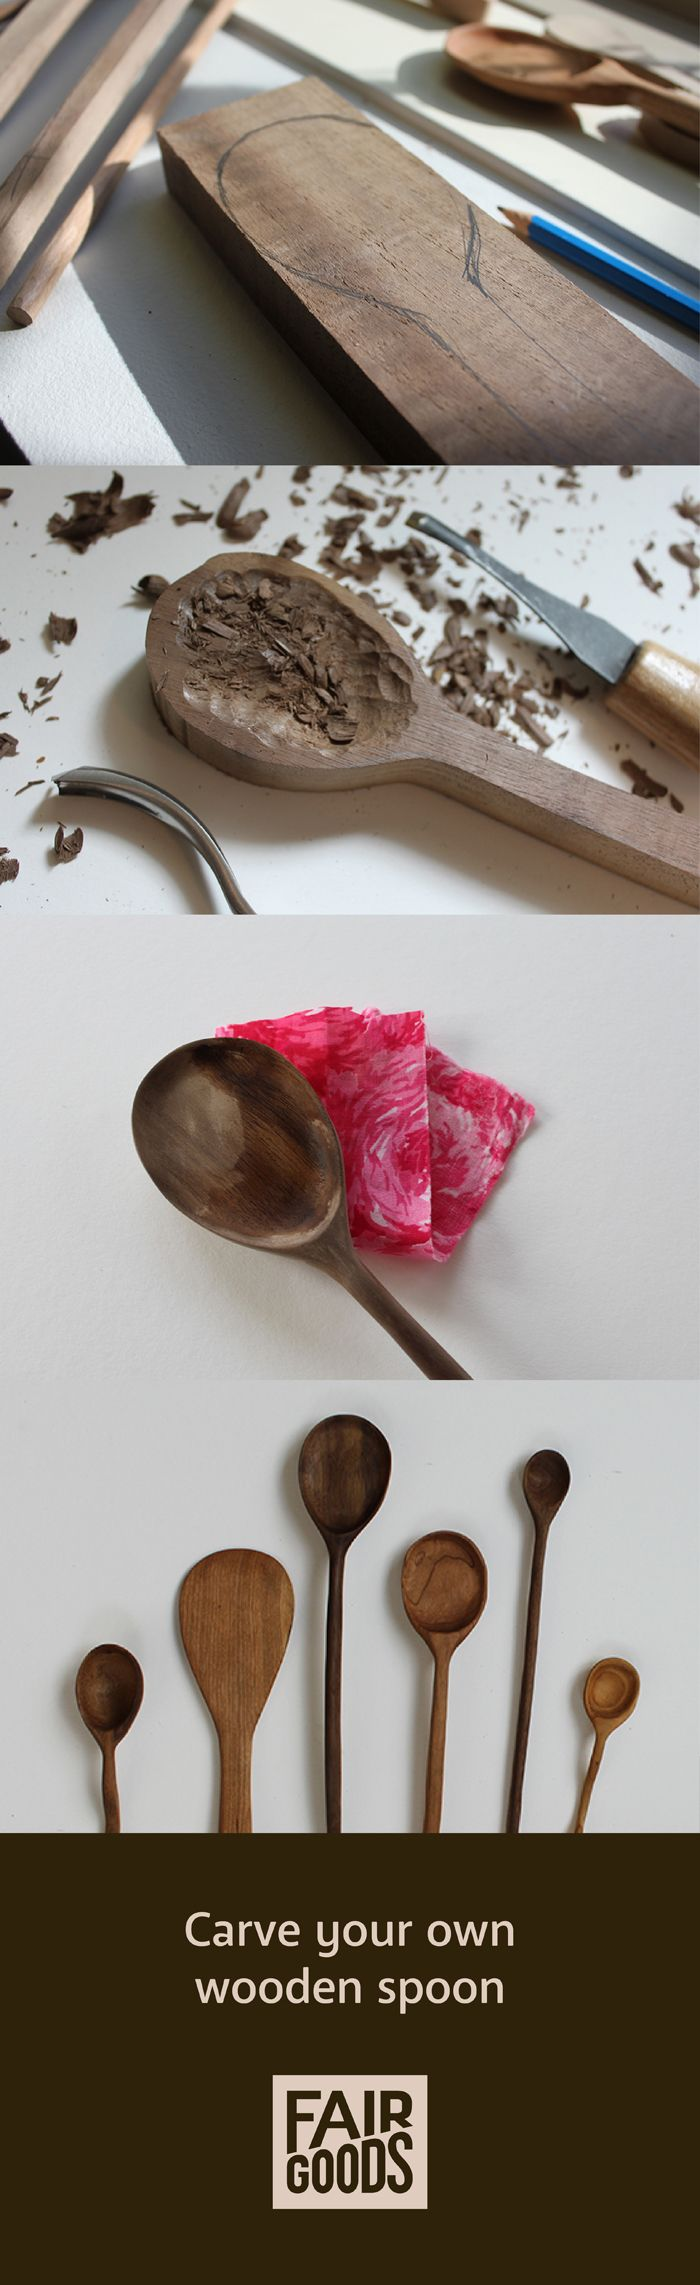 How to Carve Wooden Spoons - an easy, clear tutorial